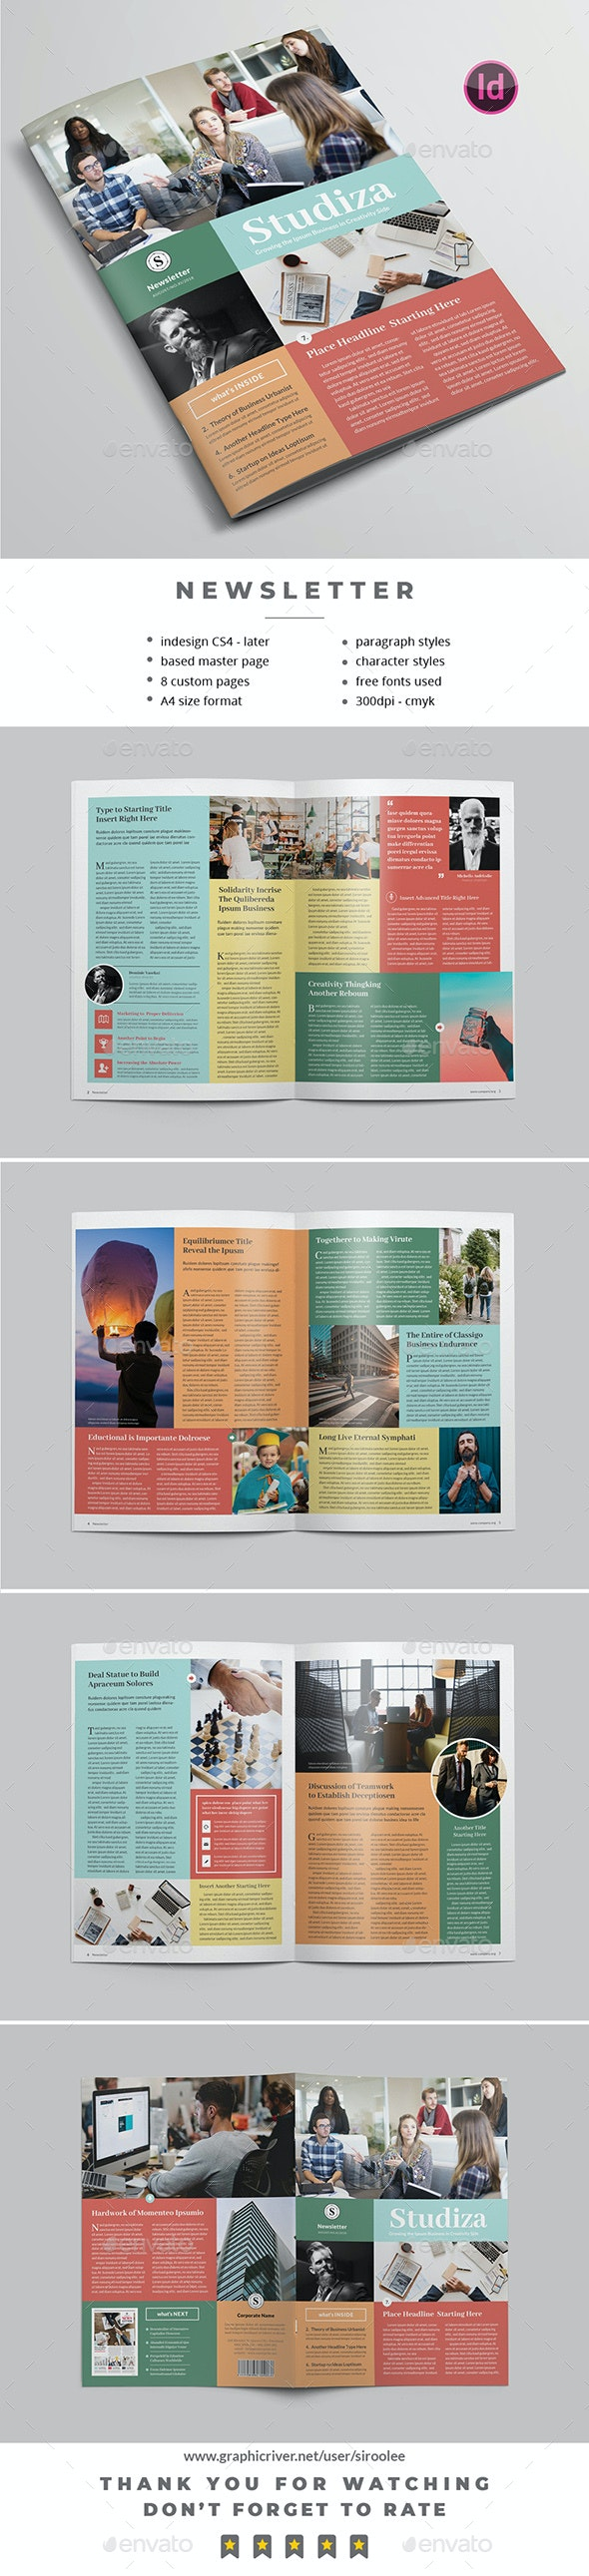 Multipurpose Newsletter v.08 - Newsletters Print Templates